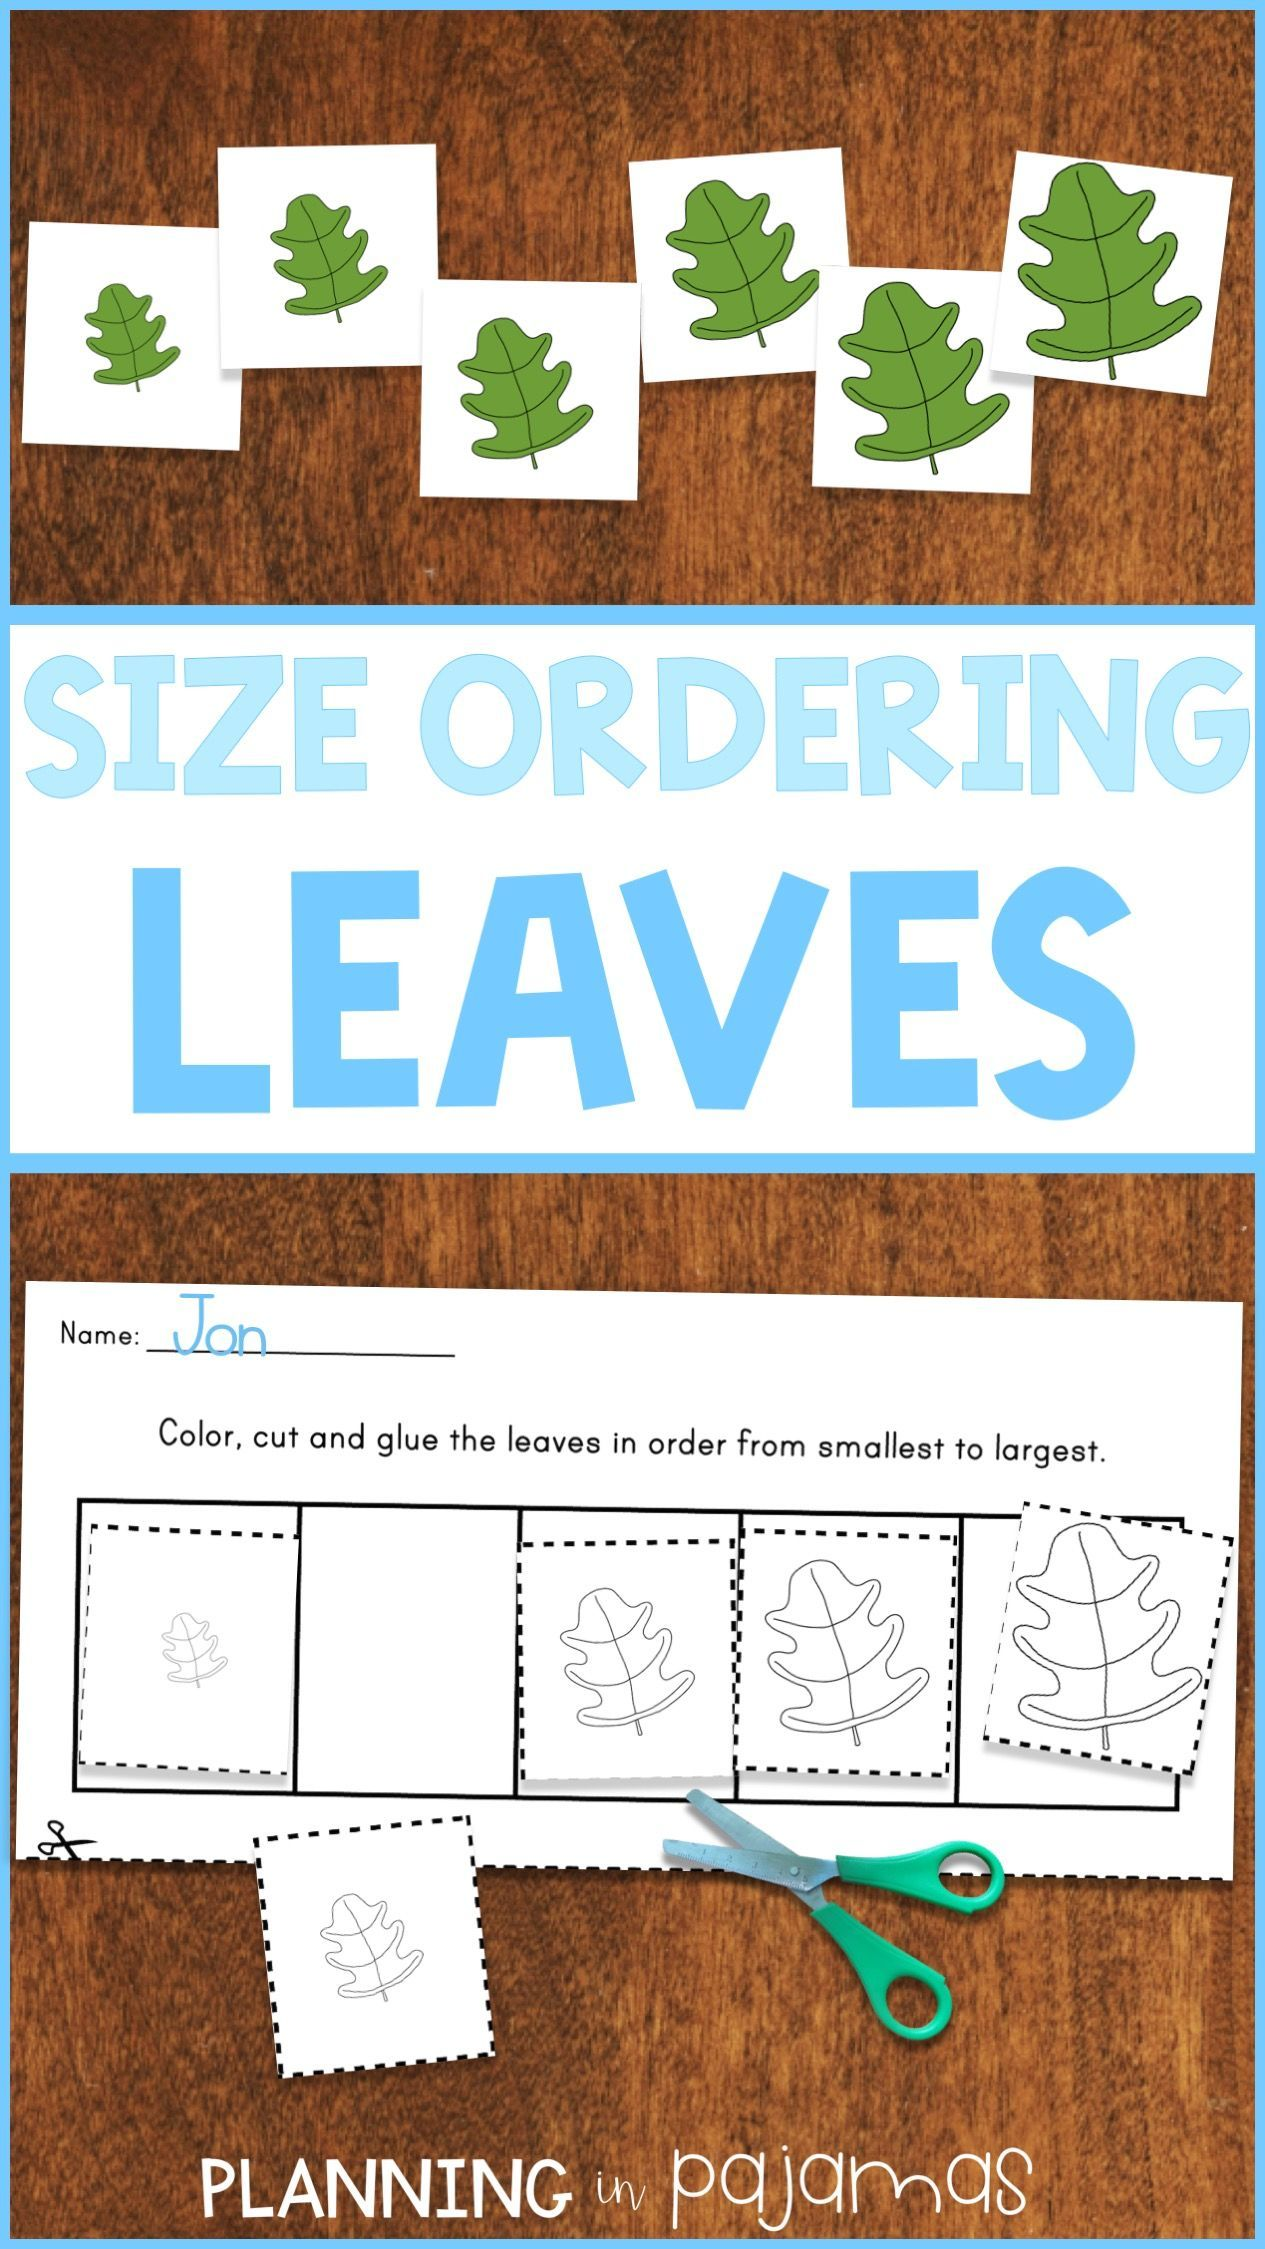 Leaves Size Ordering From Smallest To Largest